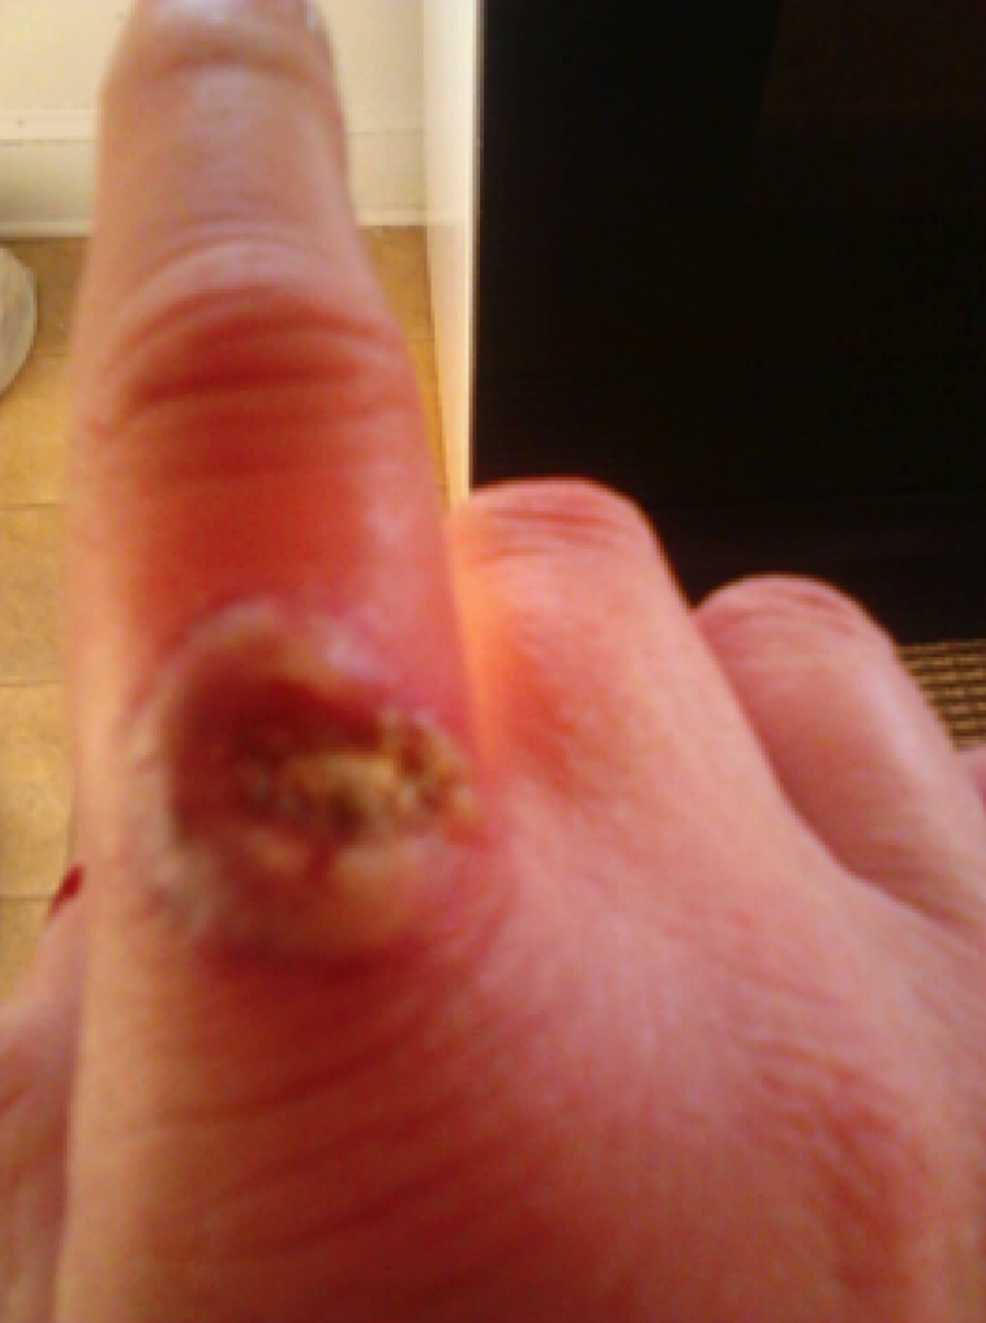 Ulcerating-blastomycosis-lesion-on-the-right-index-finger,-observed-during-physical-exam